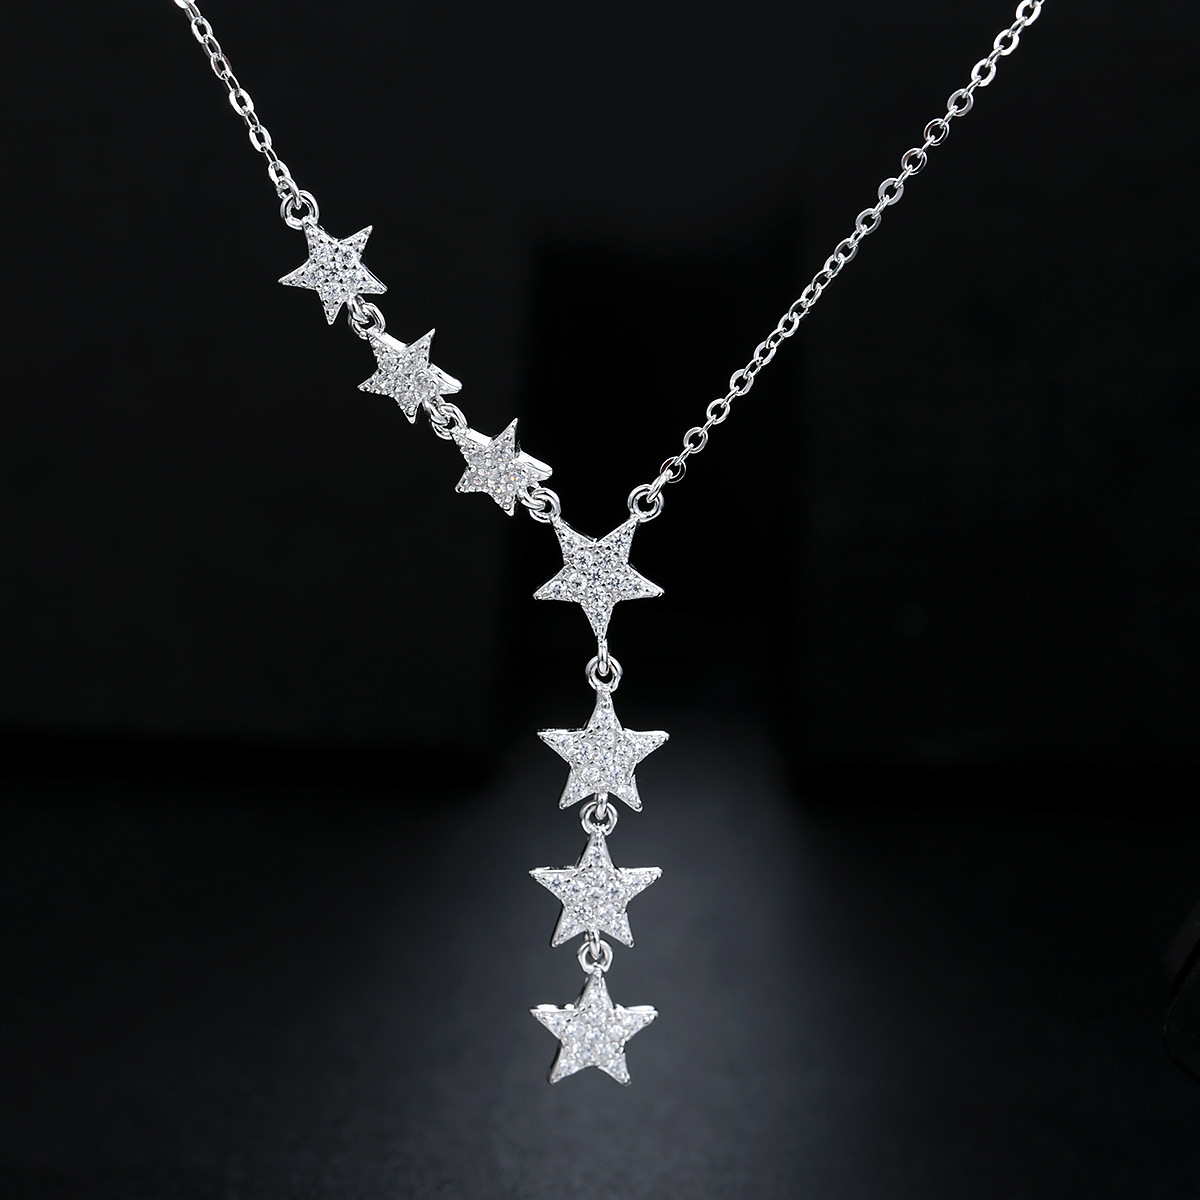 LESF Sexy Star Necklace Charm Star String S925 Sterling Silver Clavicle Chain Ladies Necklace AAA Zircon Pendant Jewelry